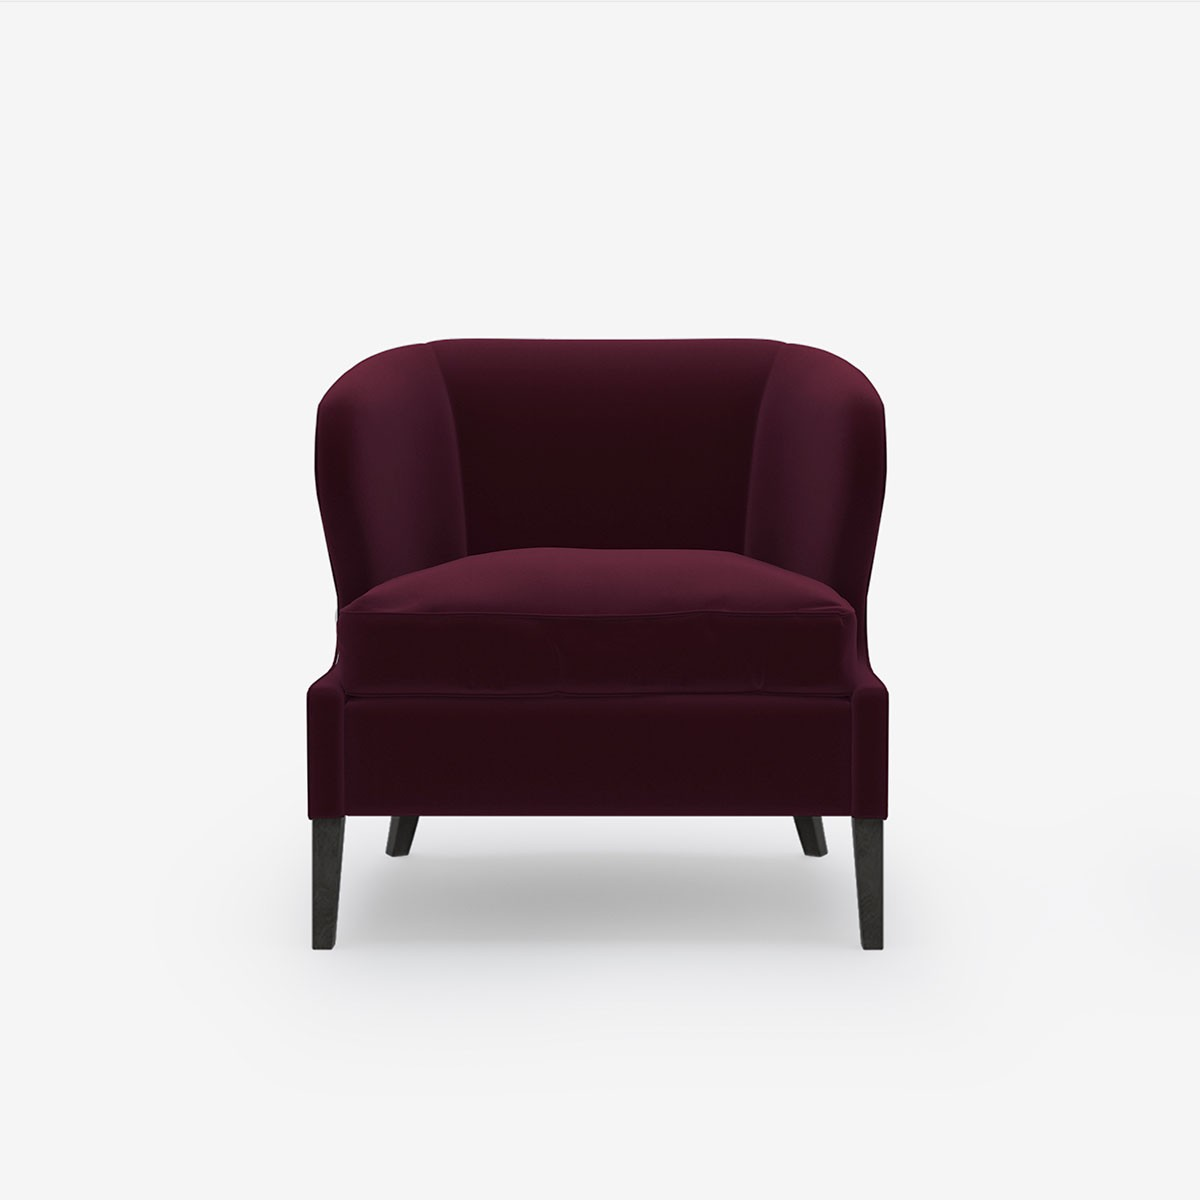 Image shows Livvy's Petite Chair in Relaxed Wool Plum